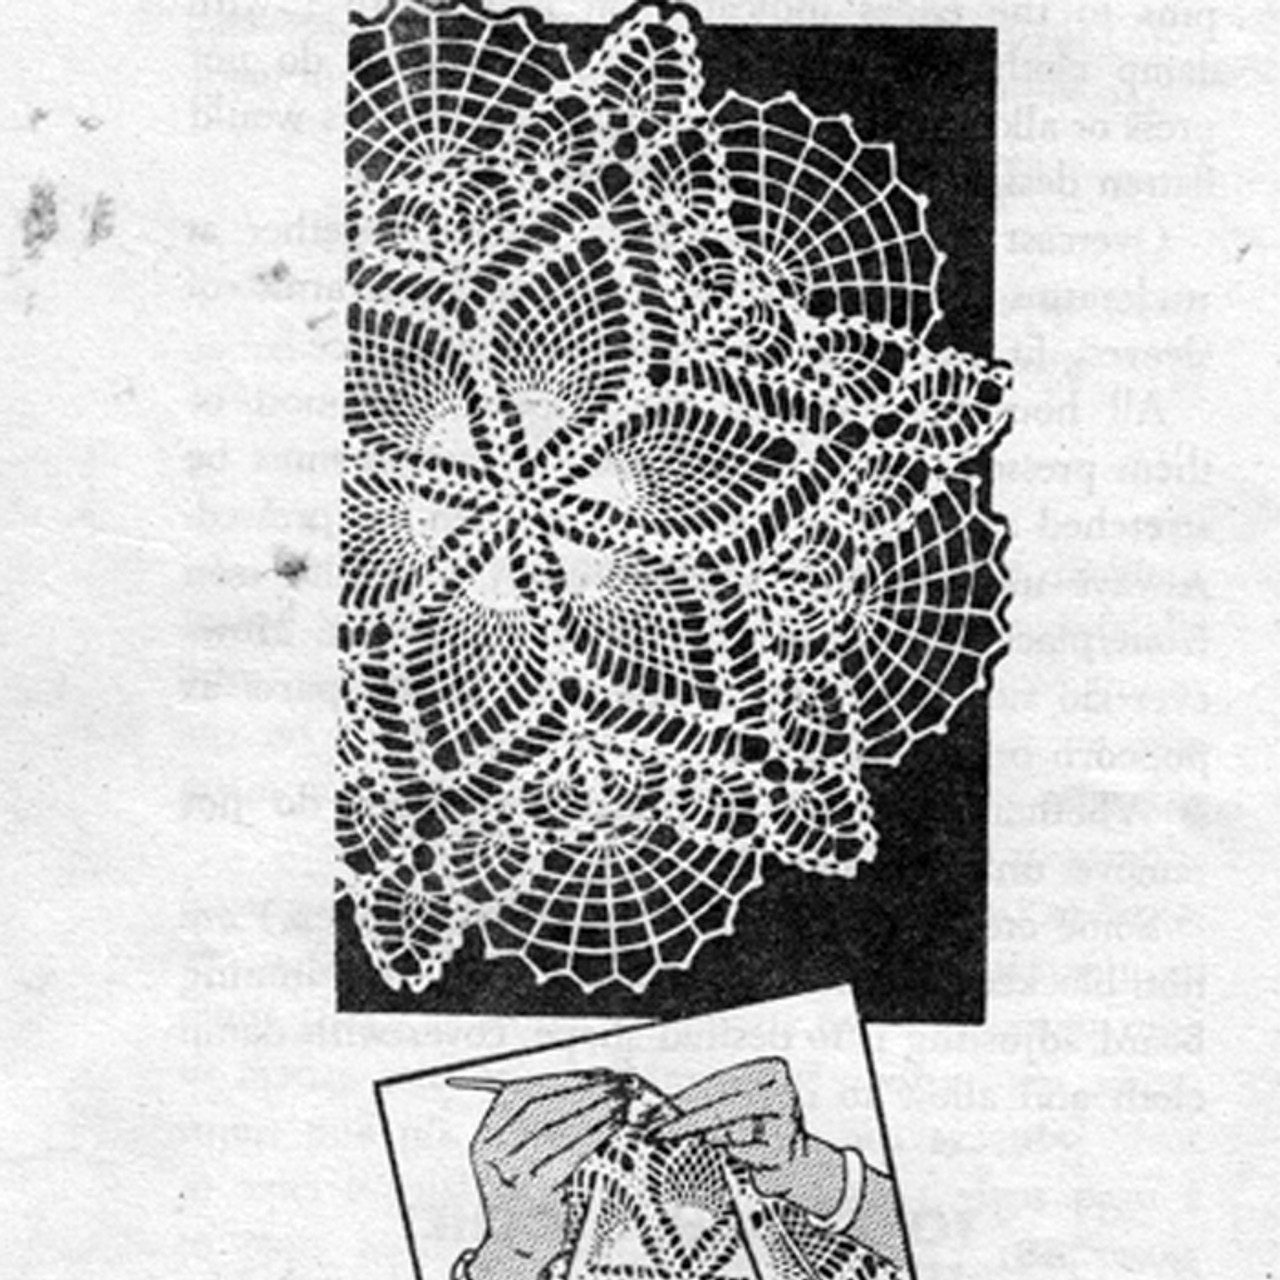 Centerpiece Crocheted Pineapple Doily No 3133